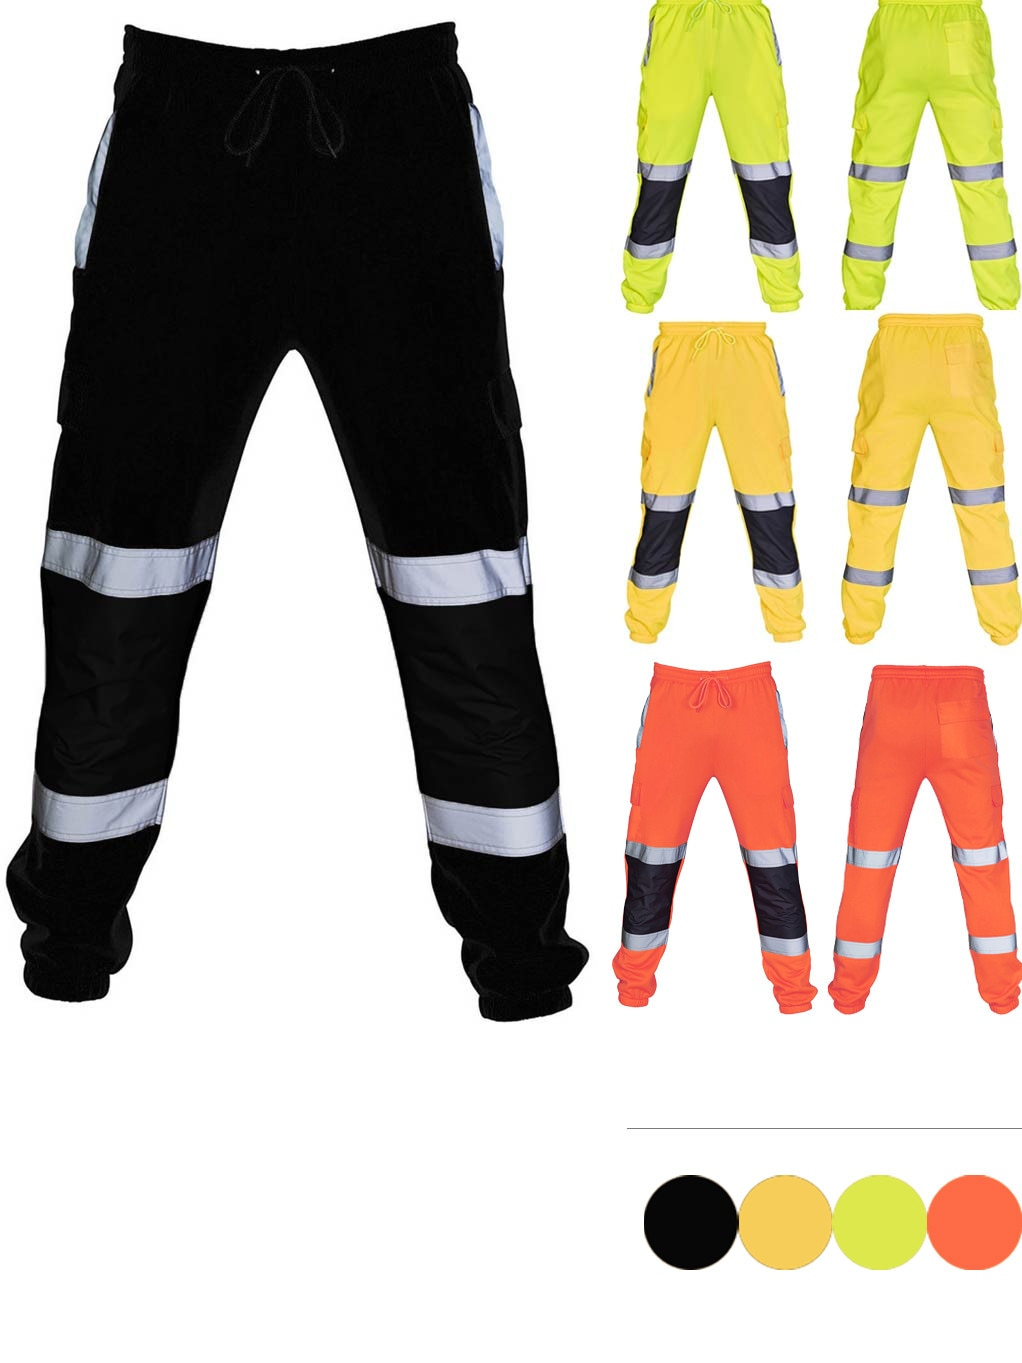 Mens Pants Road High Visibility Overalls Trousers Summer Casual Bright Color Double Horizontal Bar Pocket Work Cargo Long Pants